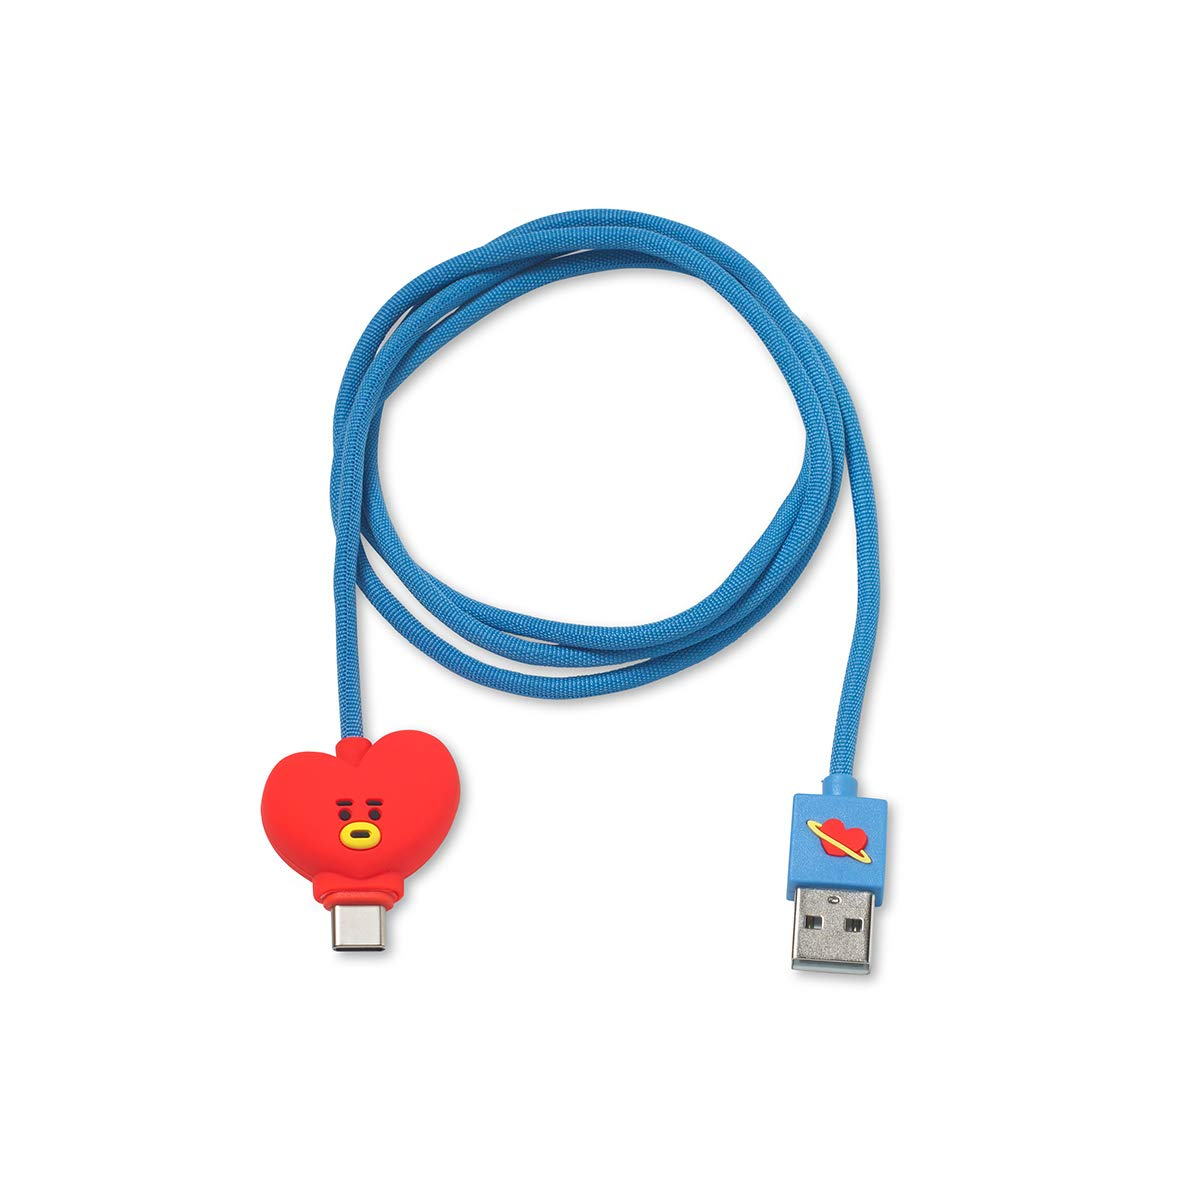 BT21 Official TATA 3ft USB-C a USB-A Charging cable xsr